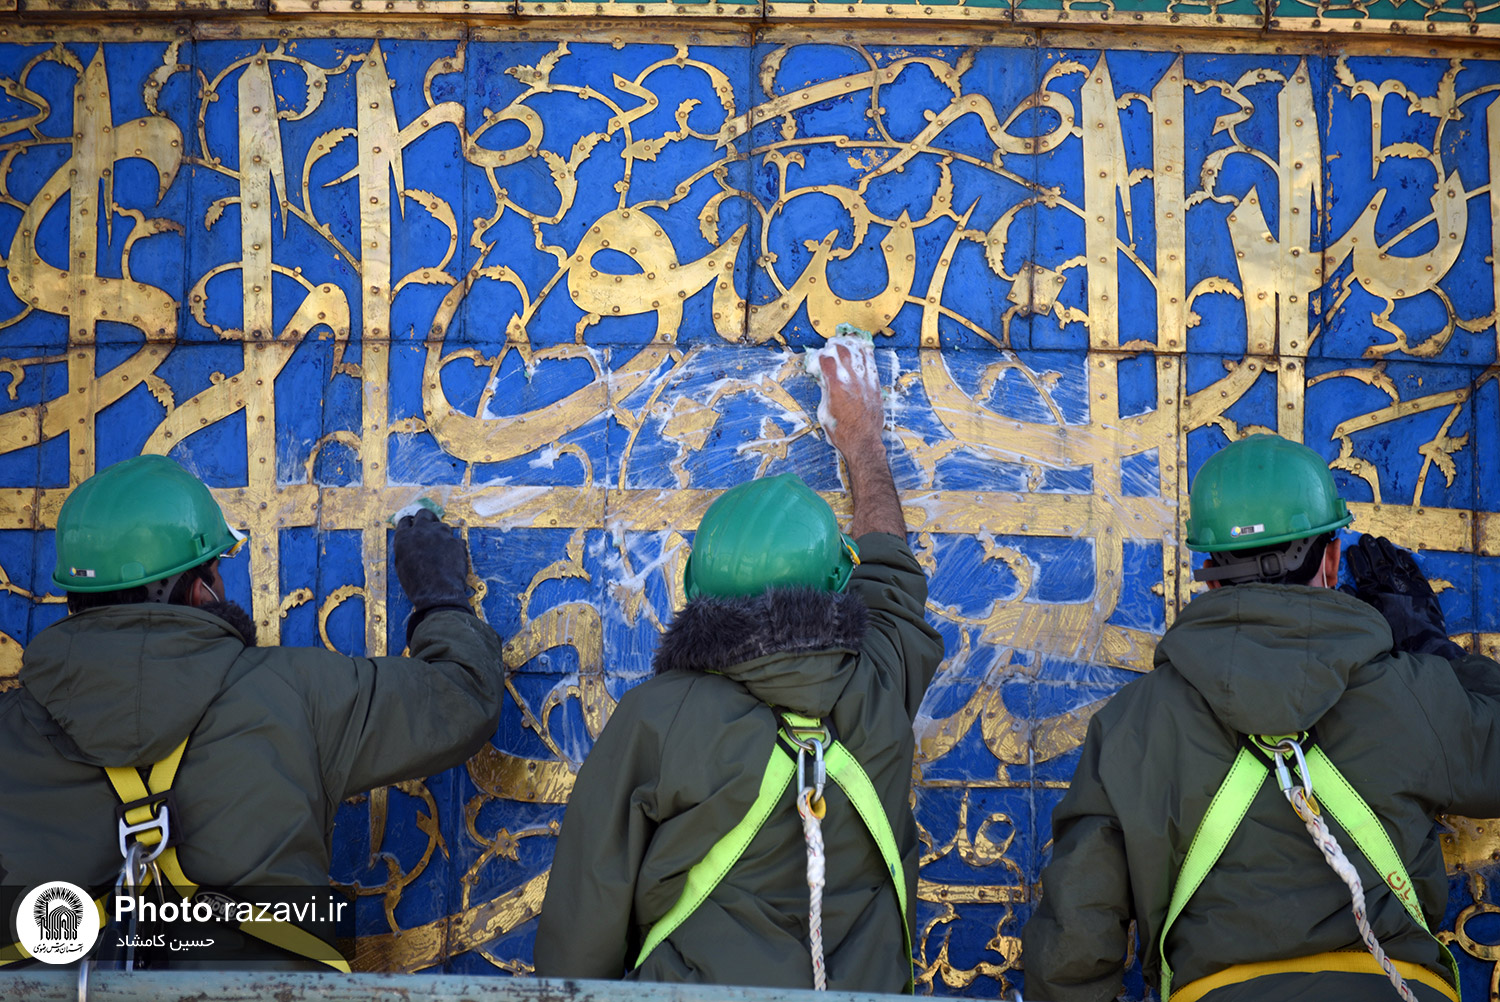 Polishing operation of the golden dome of the holy shrine